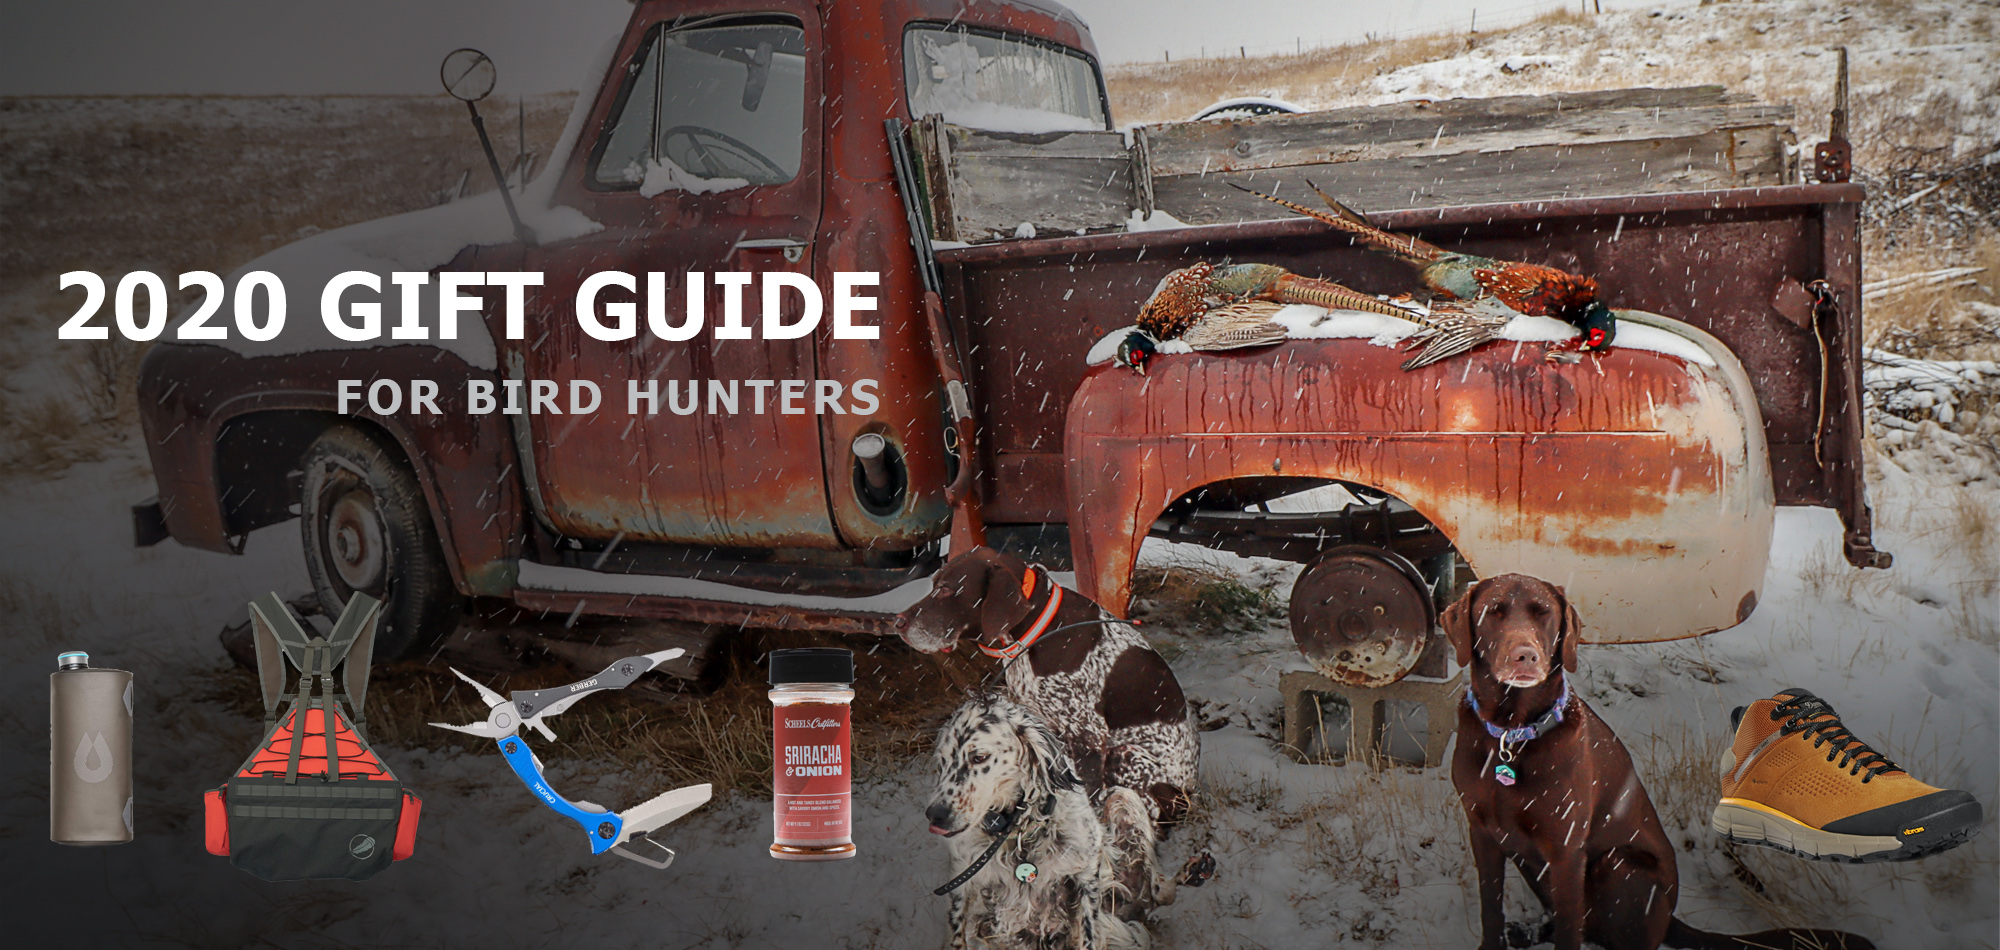 2020 Gift Guide for Bird Hunters